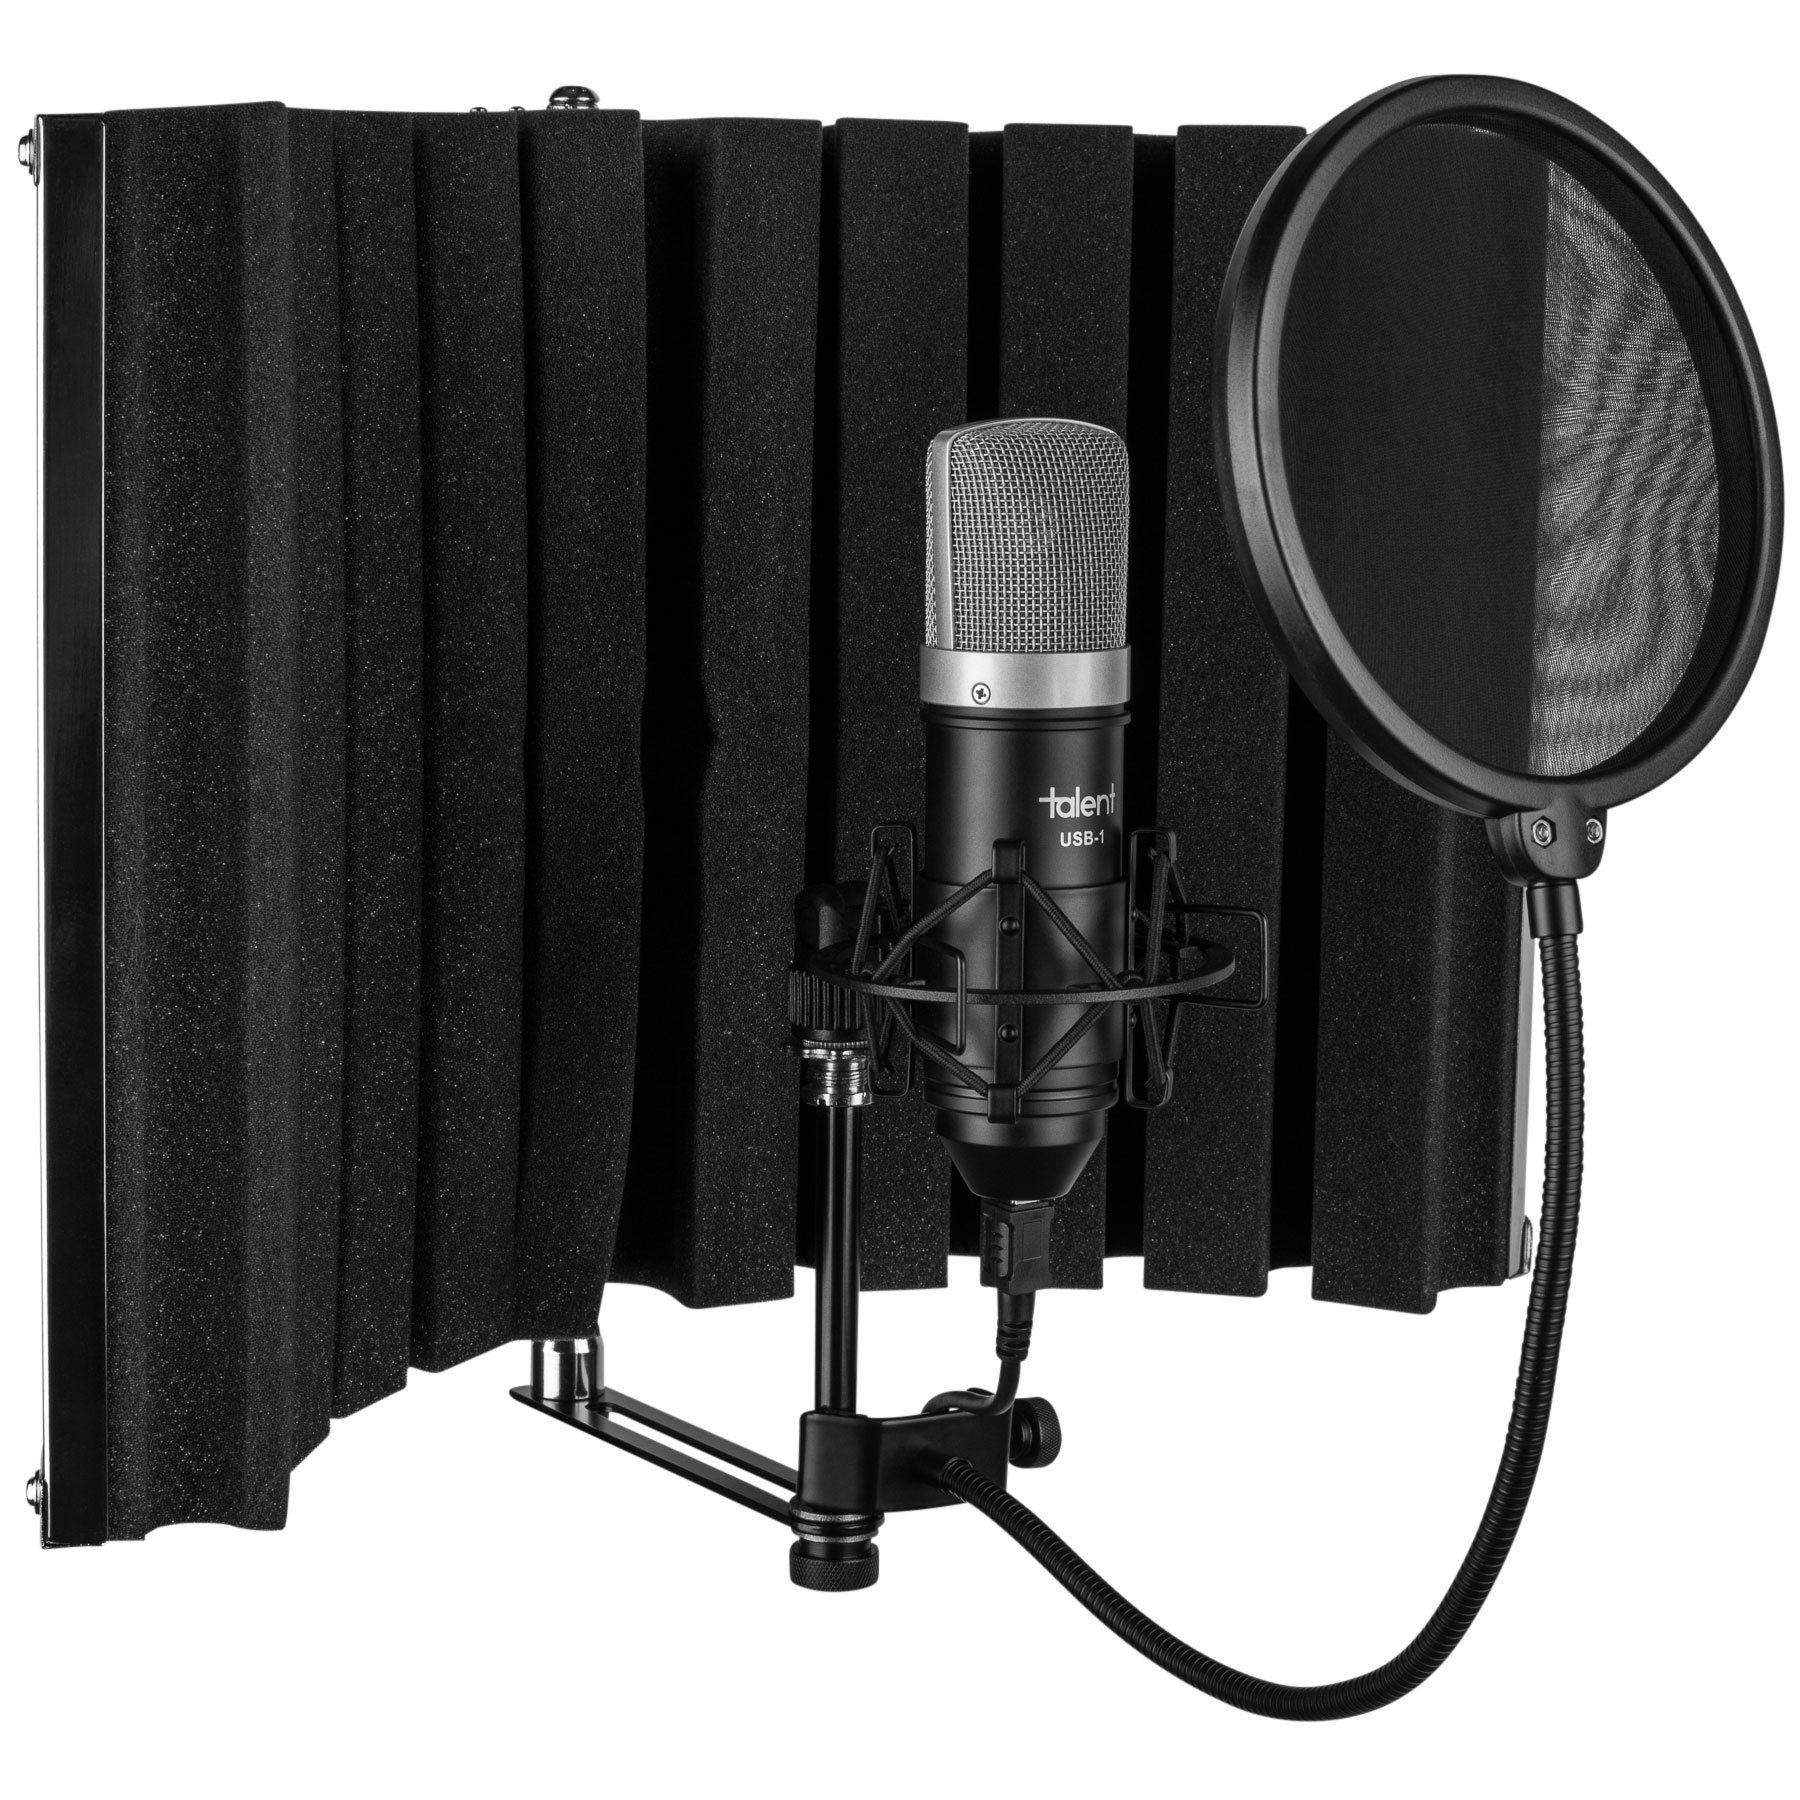 Talent All-in-One USB Home Recording Studio - Vocal Booth - USB Mic - Shock Mount - Pop Filter by Talent Sound & Lighting